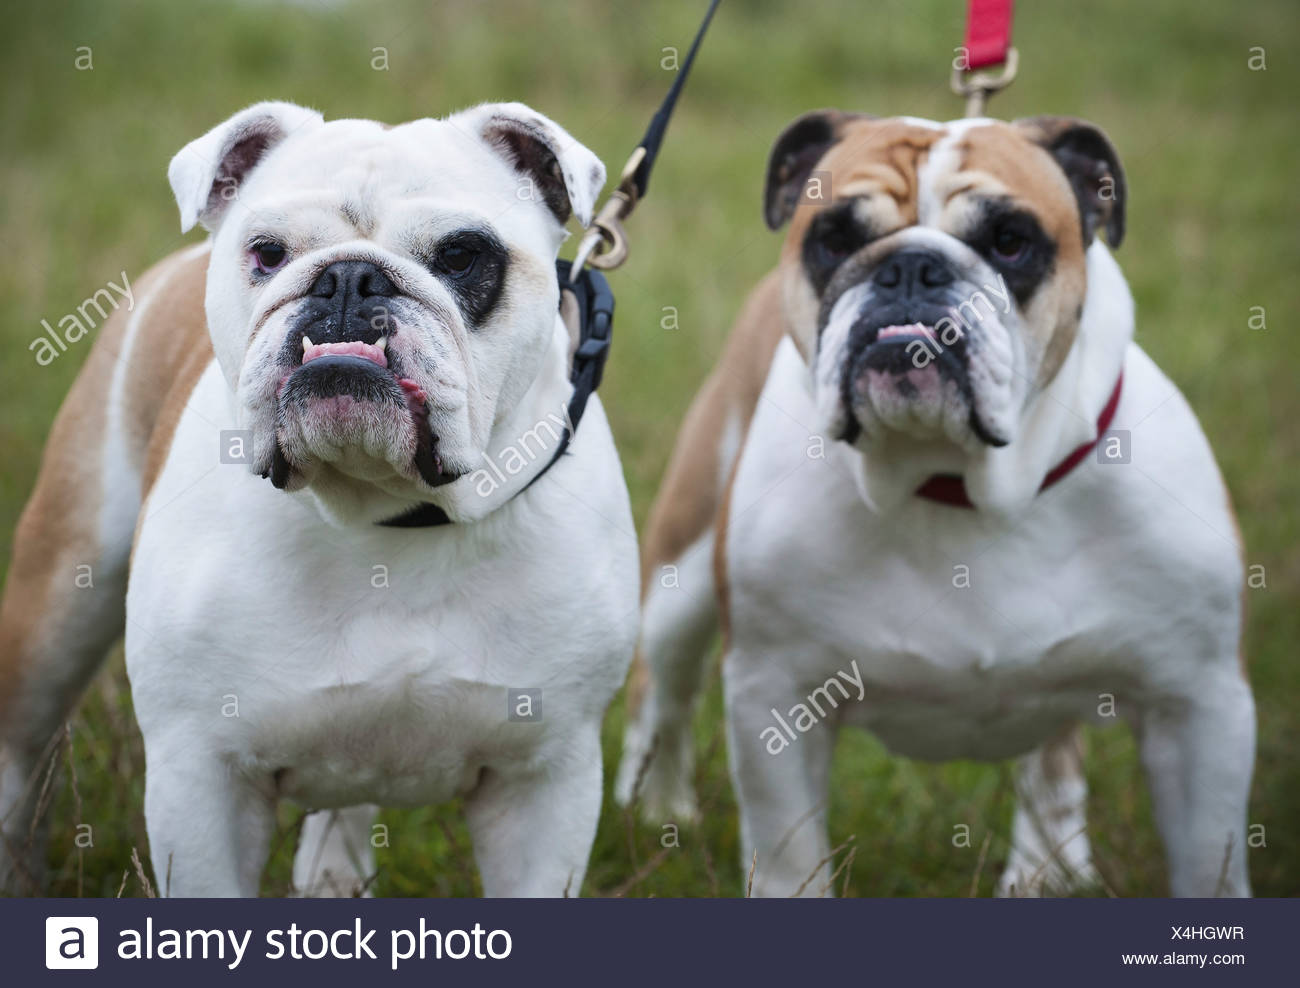 Two white and fawn English Bulldogs on leads looking upwards England - Stock Image